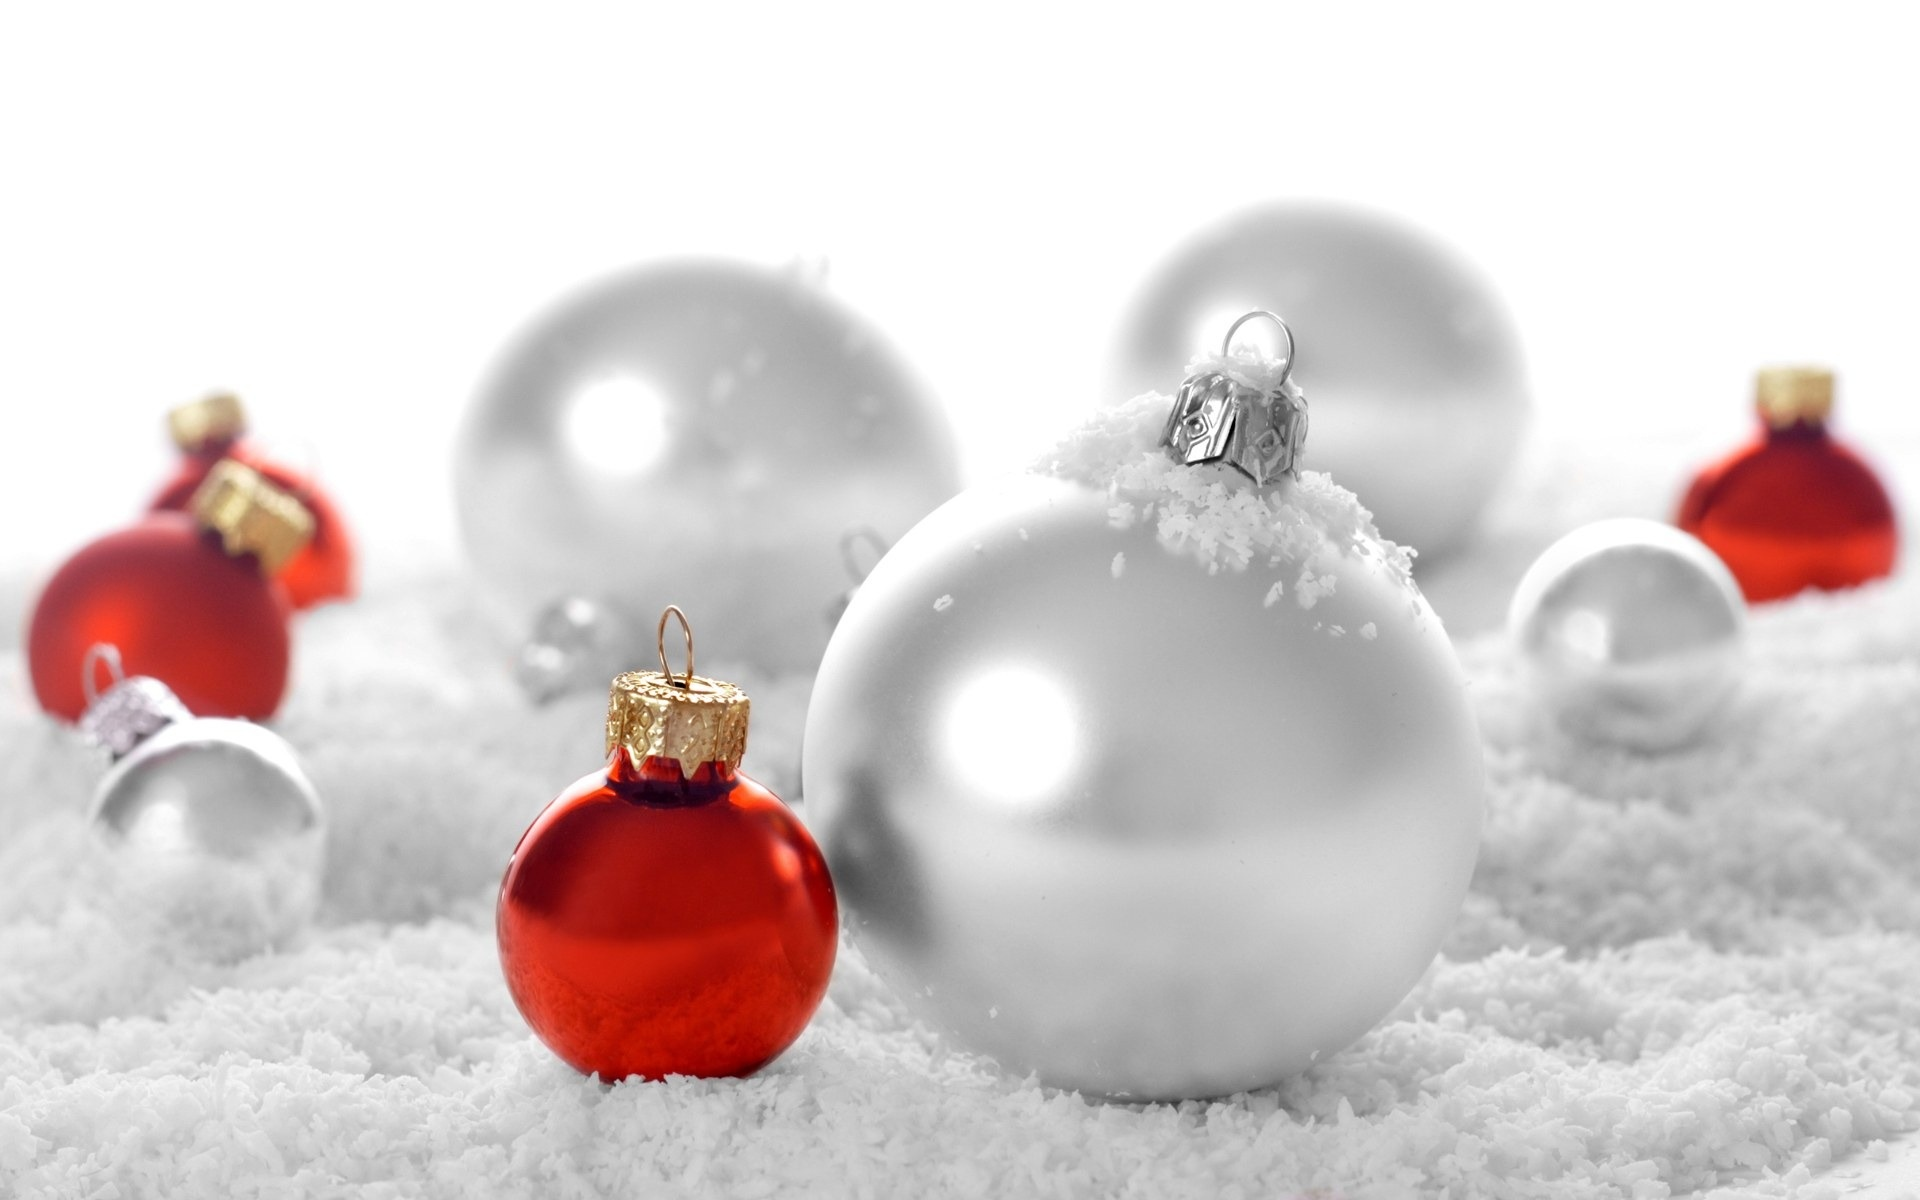 Christmas Decorations wallpaper 1920x1200